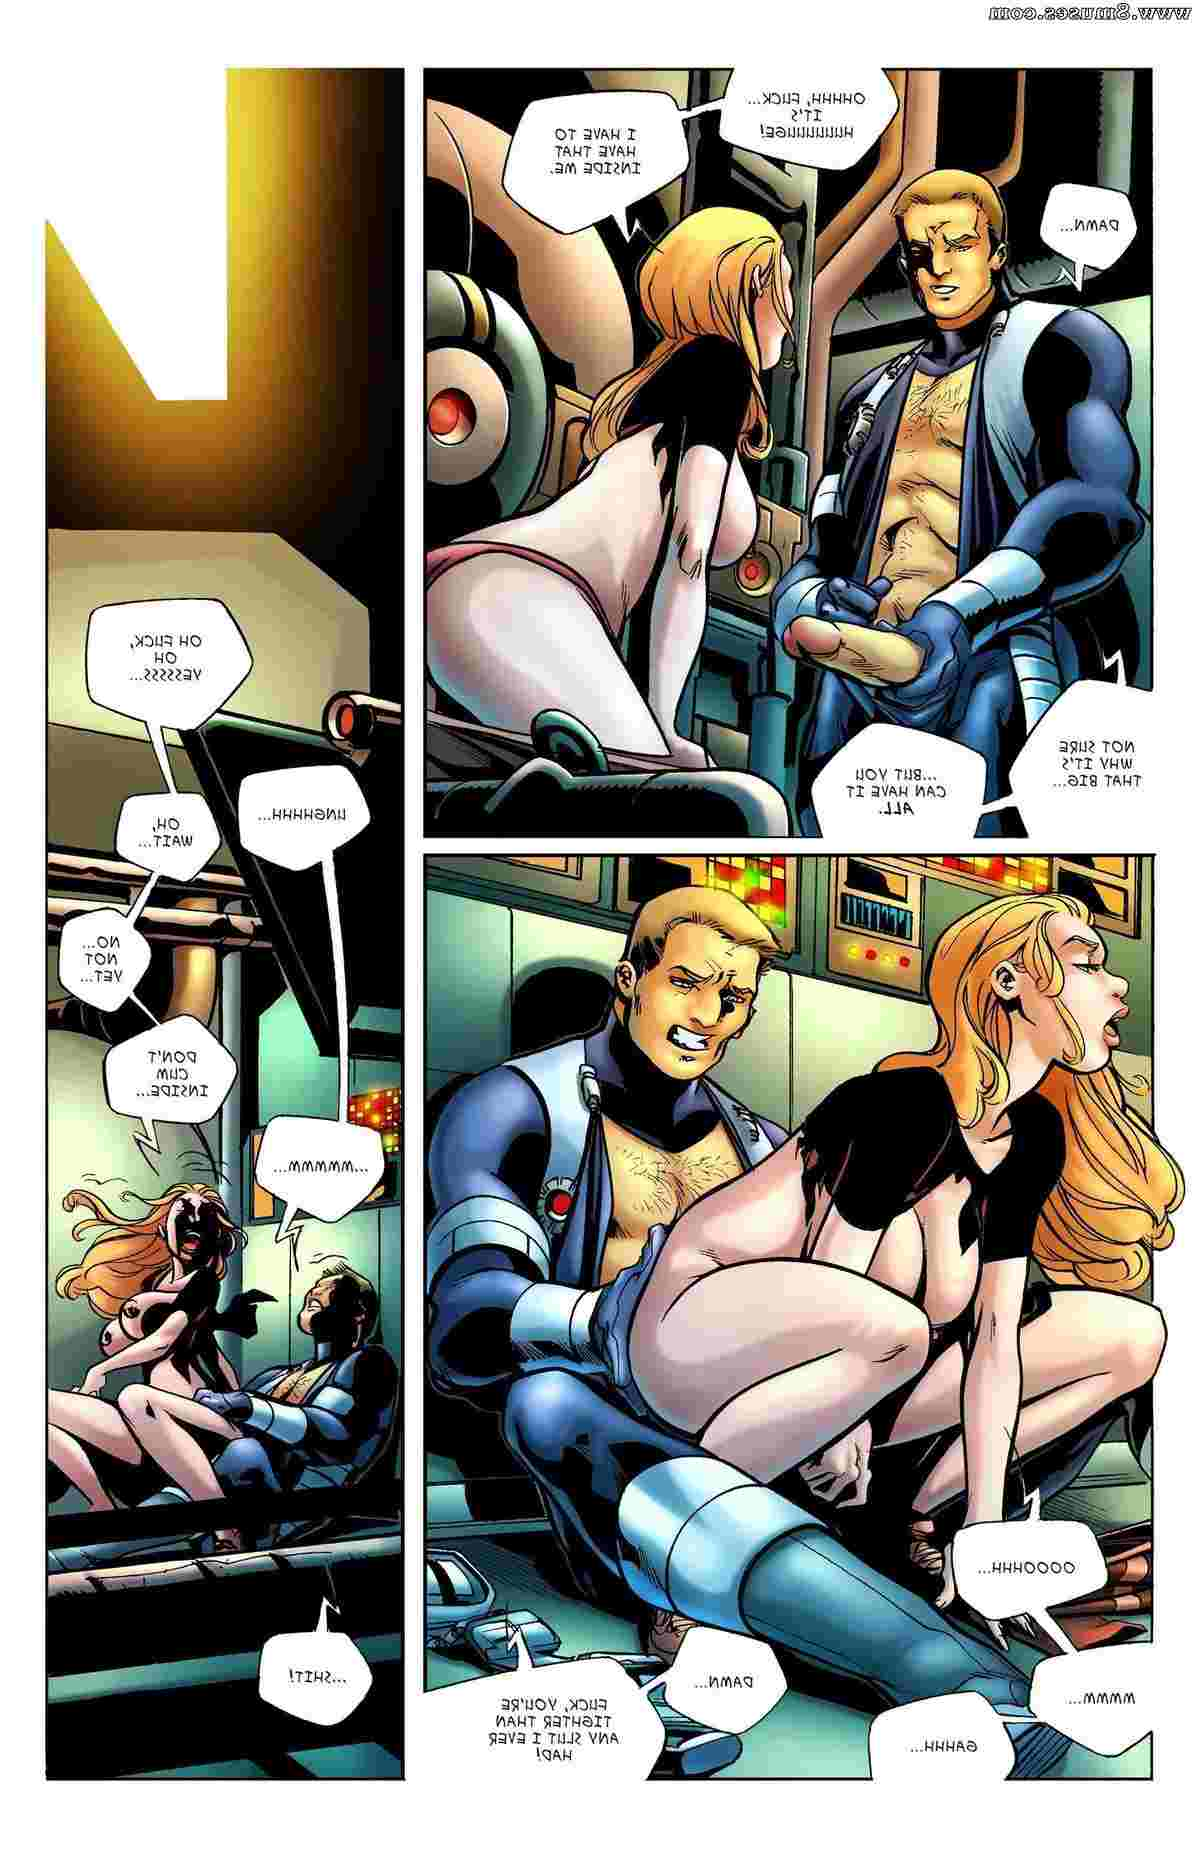 Giantess-Club-Comics/Bubbling-Up-from-the-Abyss Bubbling_Up_from_the_Abyss__8muses_-_Sex_and_Porn_Comics_41.jpg